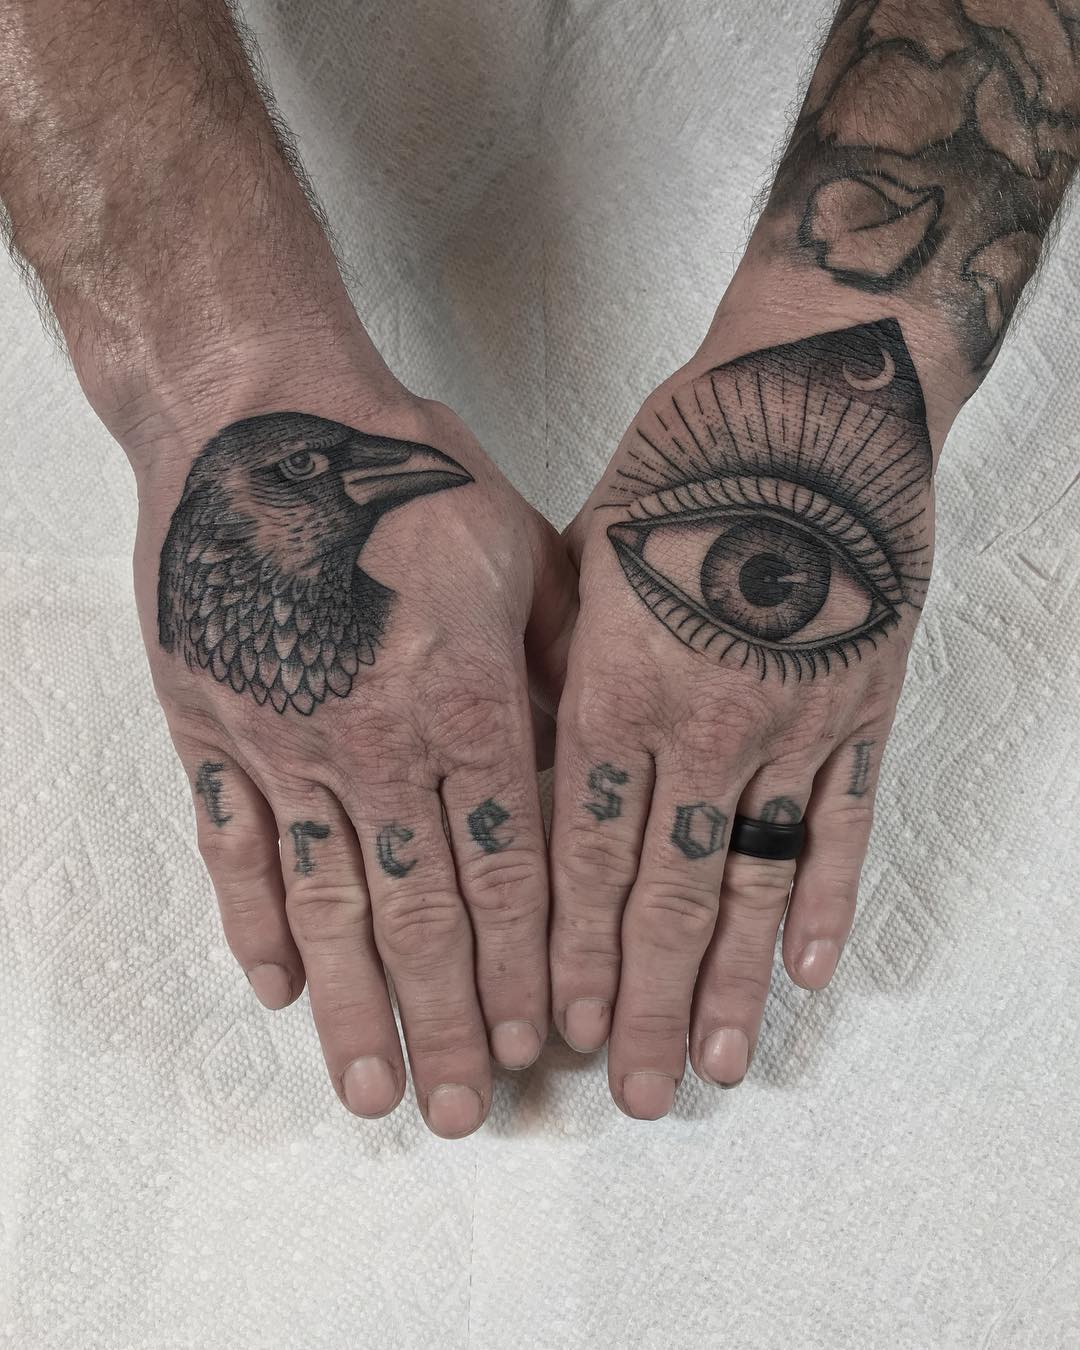 Inked hands by @justinoliviertattoo